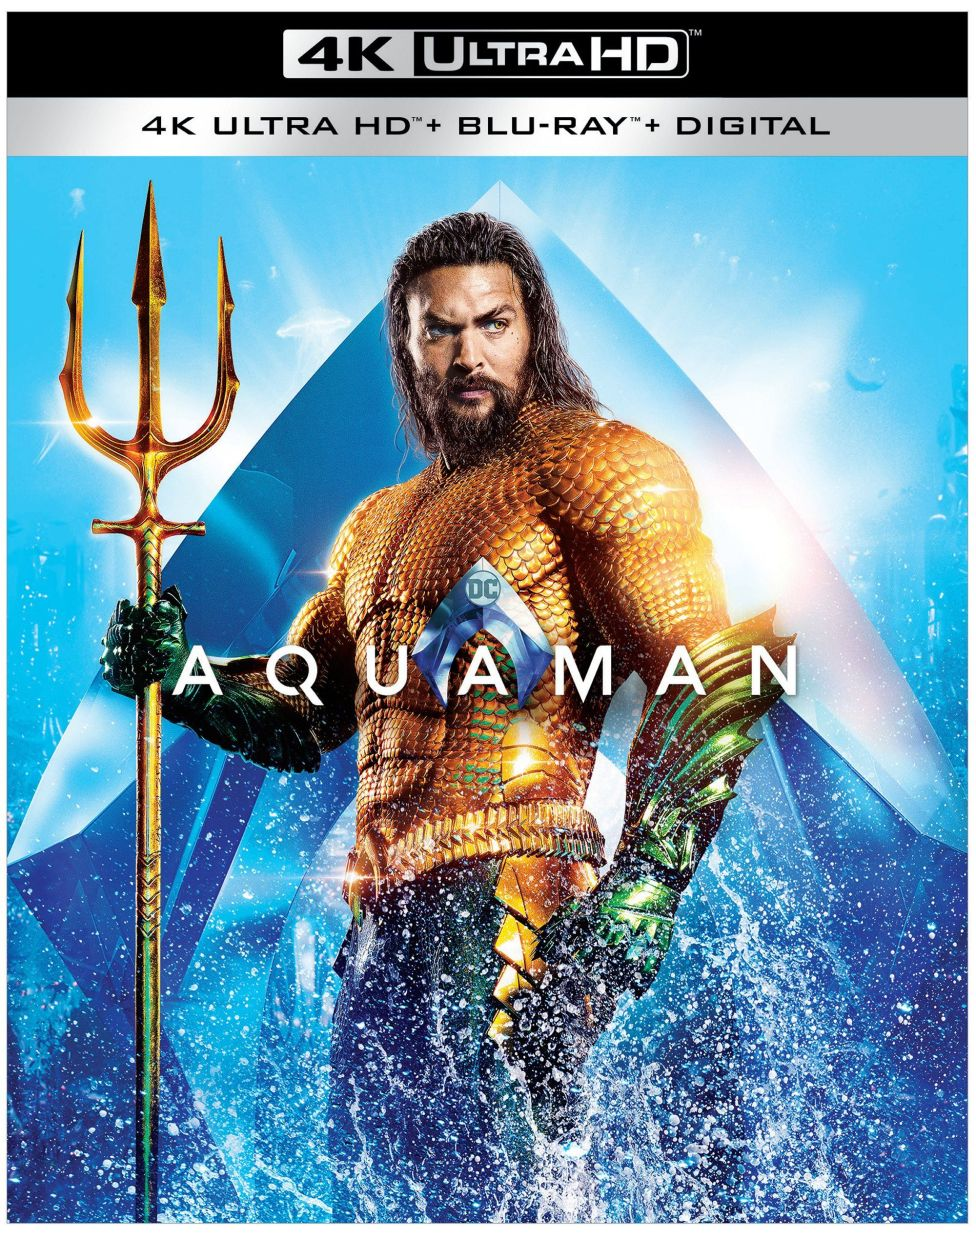 Aquaman Surfaces On Blu-Ray